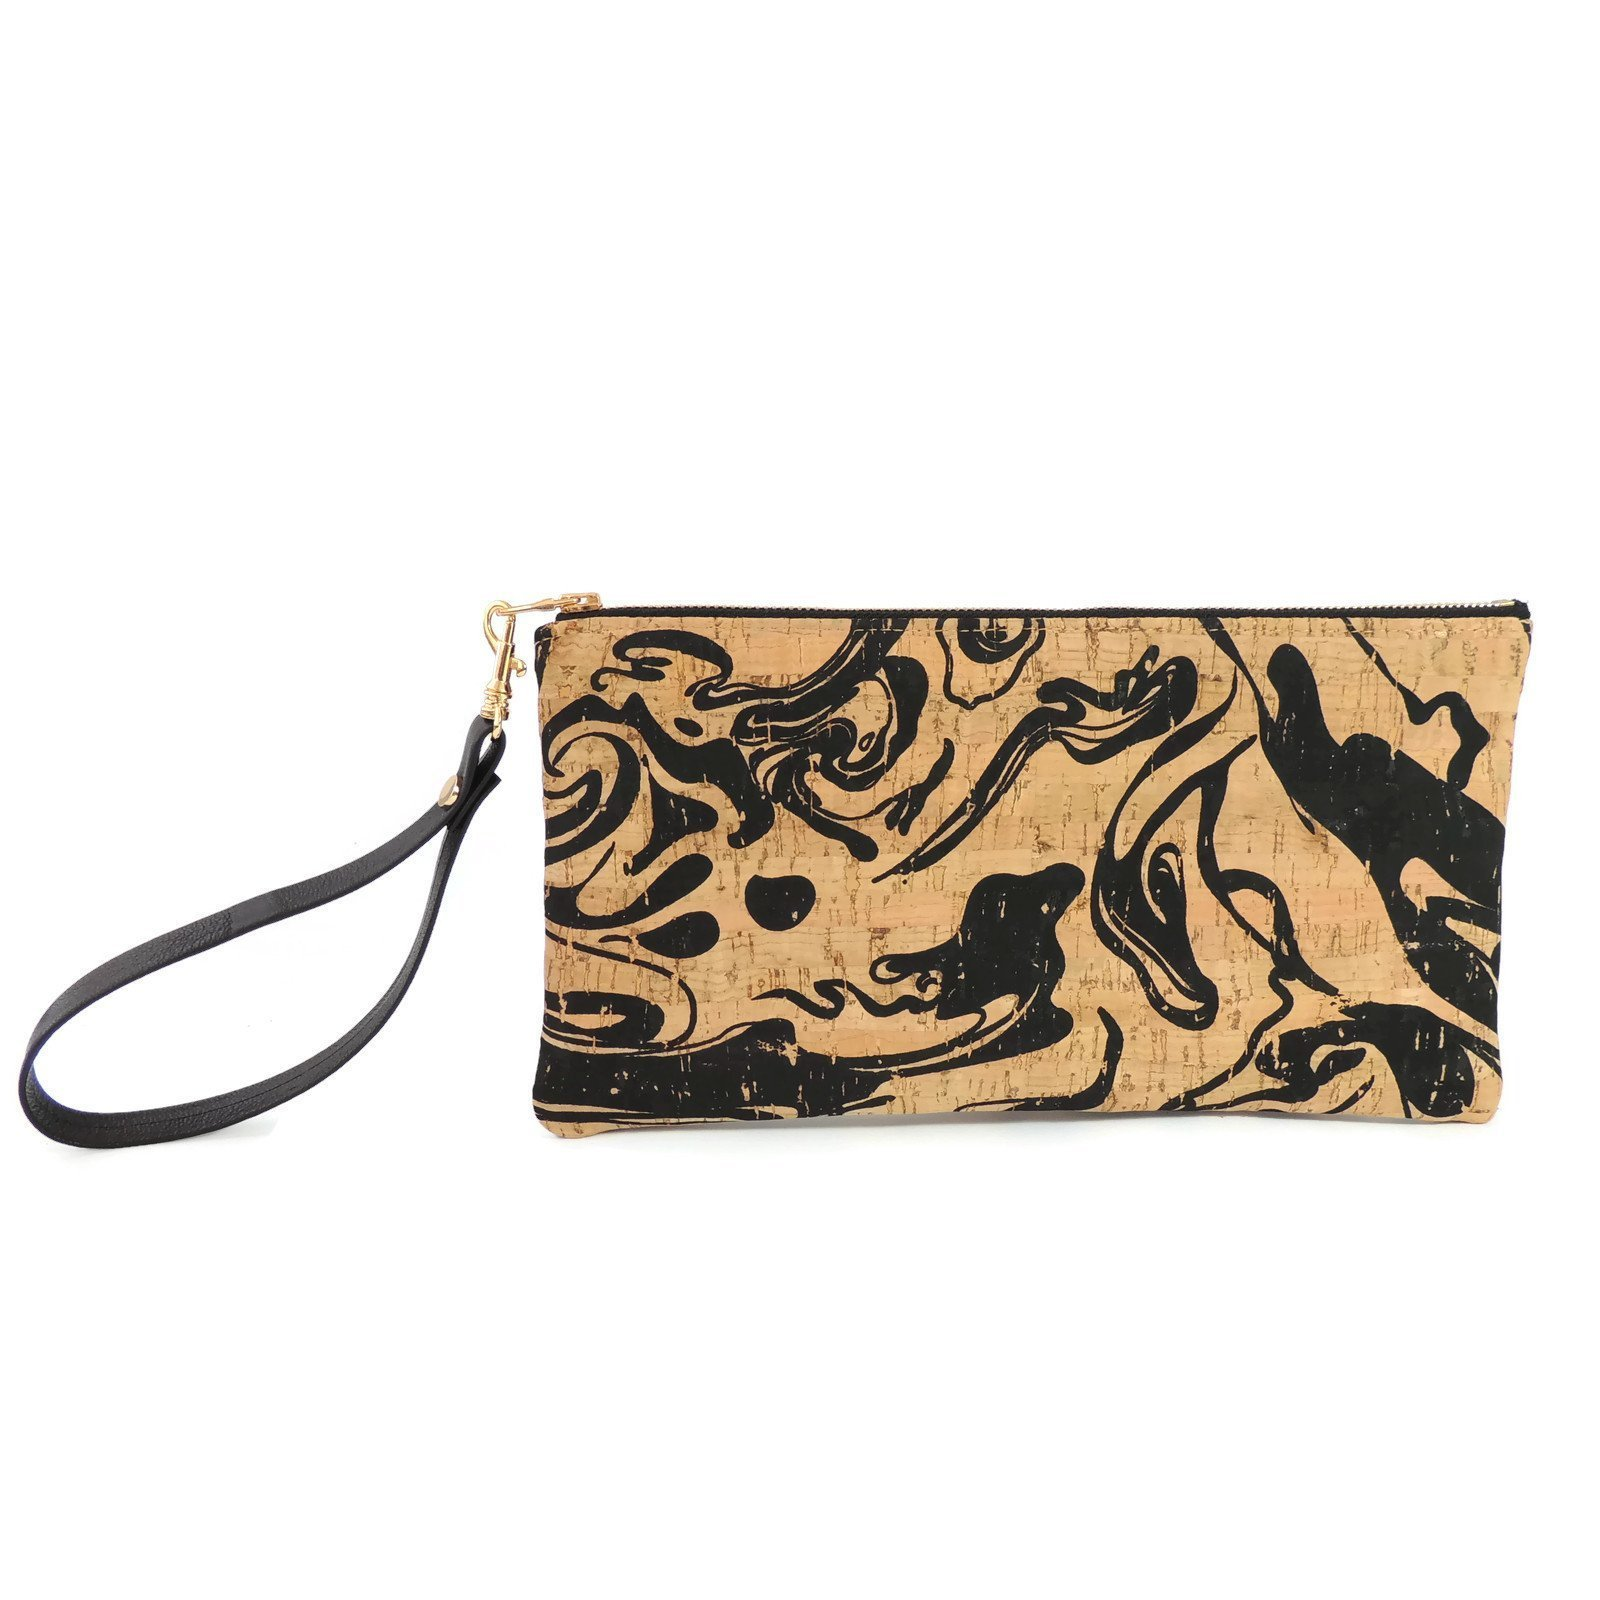 Marbled Cork Evening Clutch by Spicer Bags